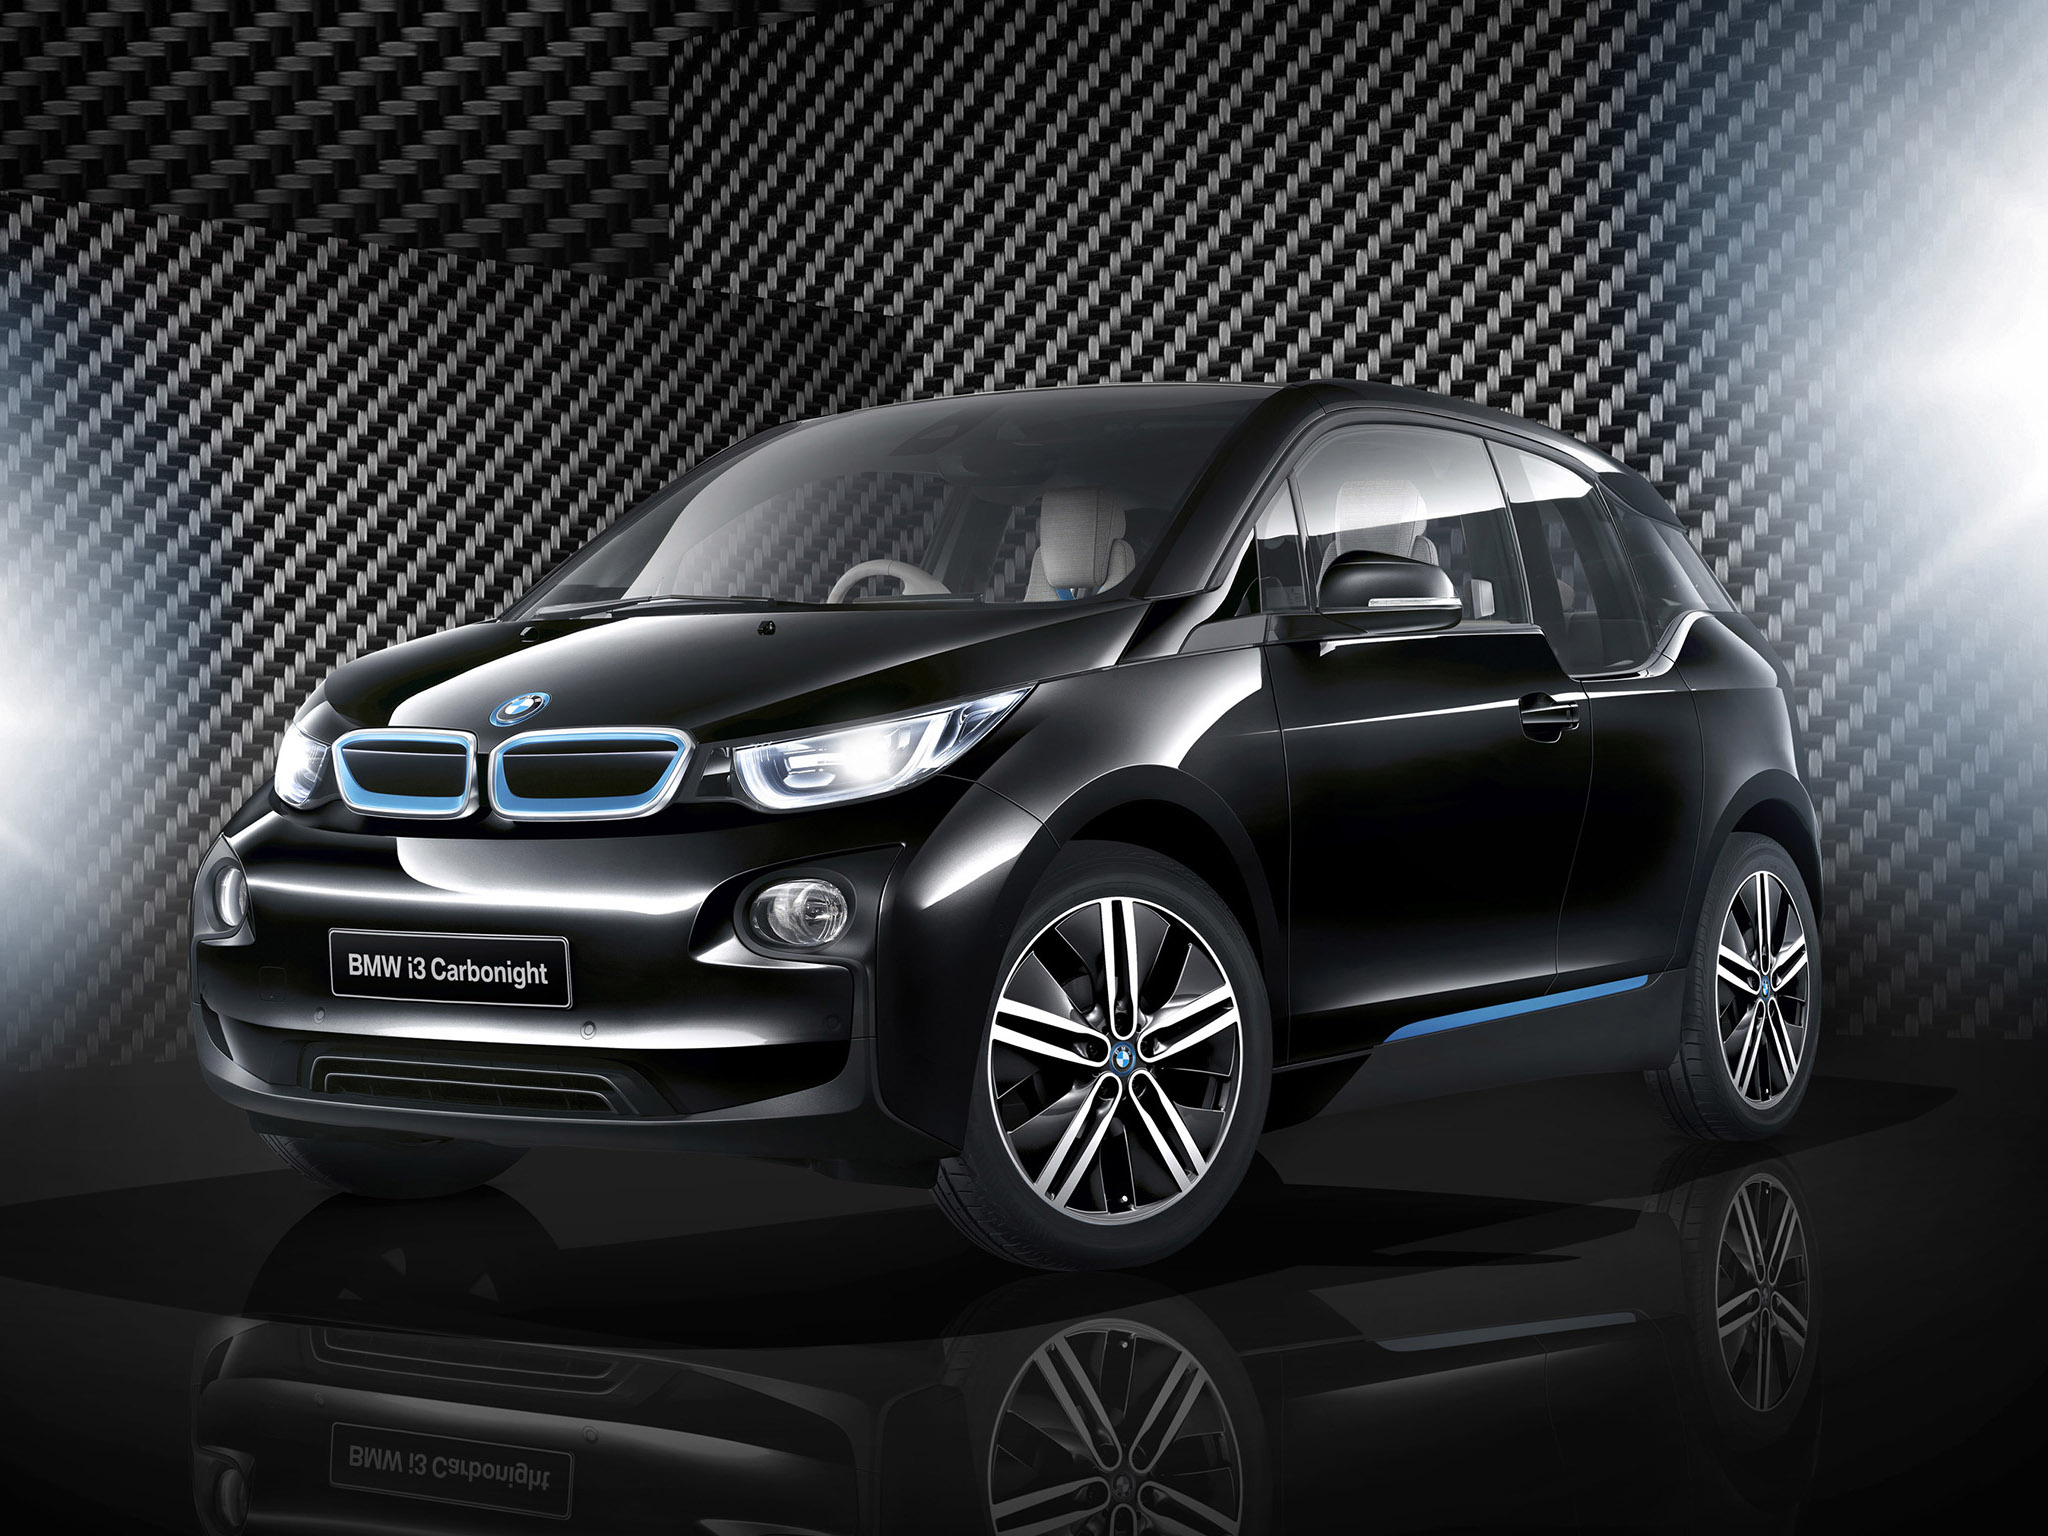 2016 Bmw i3 Carbonight